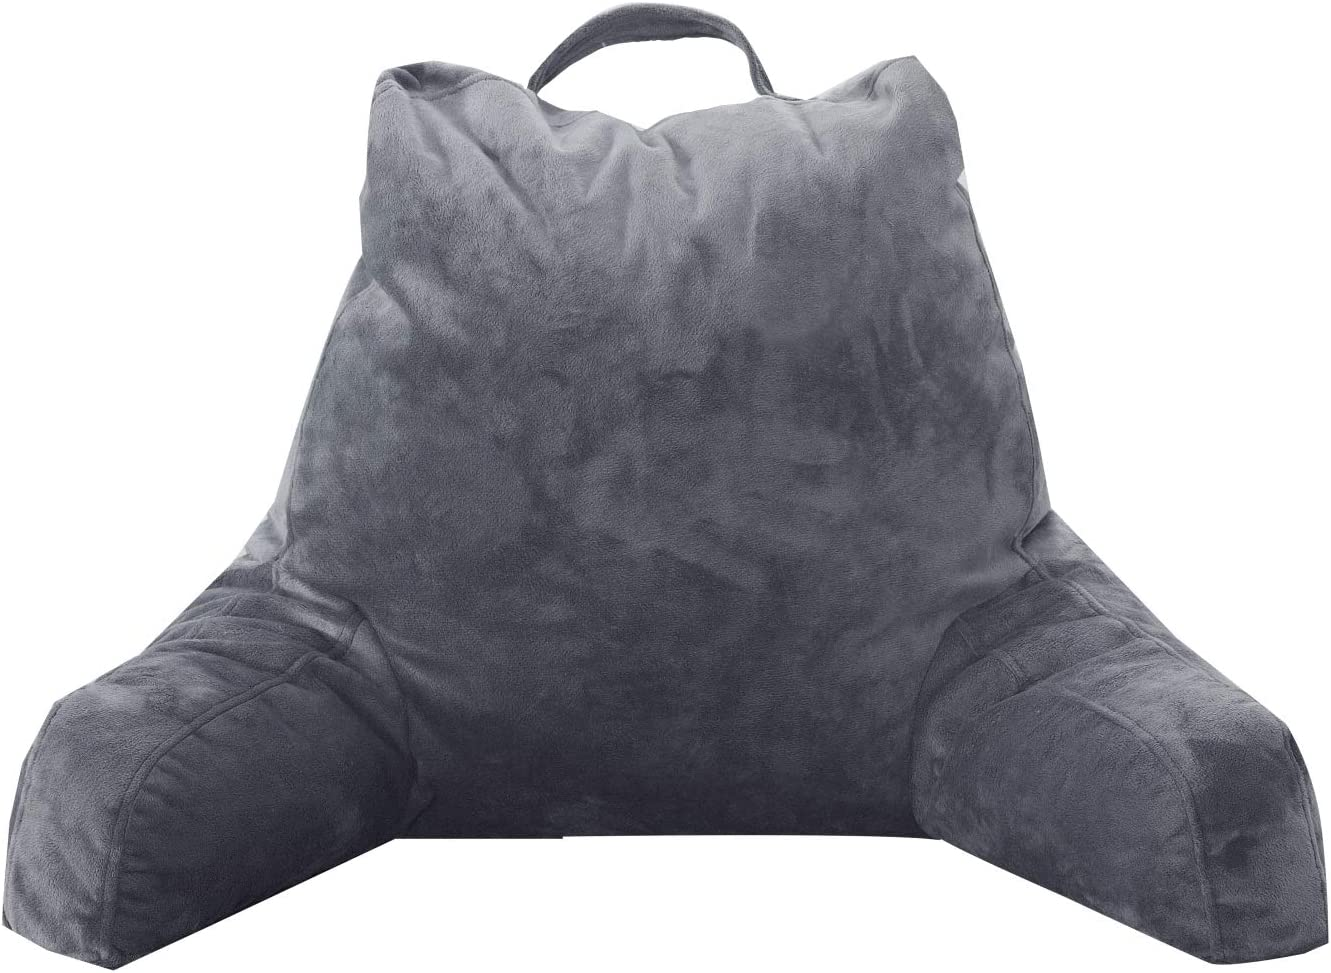 FASO Reading Pillow with Arms for Sitting in Bed,Adult Back Support for Bed with arms,Backrest Lounge Cushion with Pockets for Reading/Watching TV-18inch(Gray) : Home & Kitchen